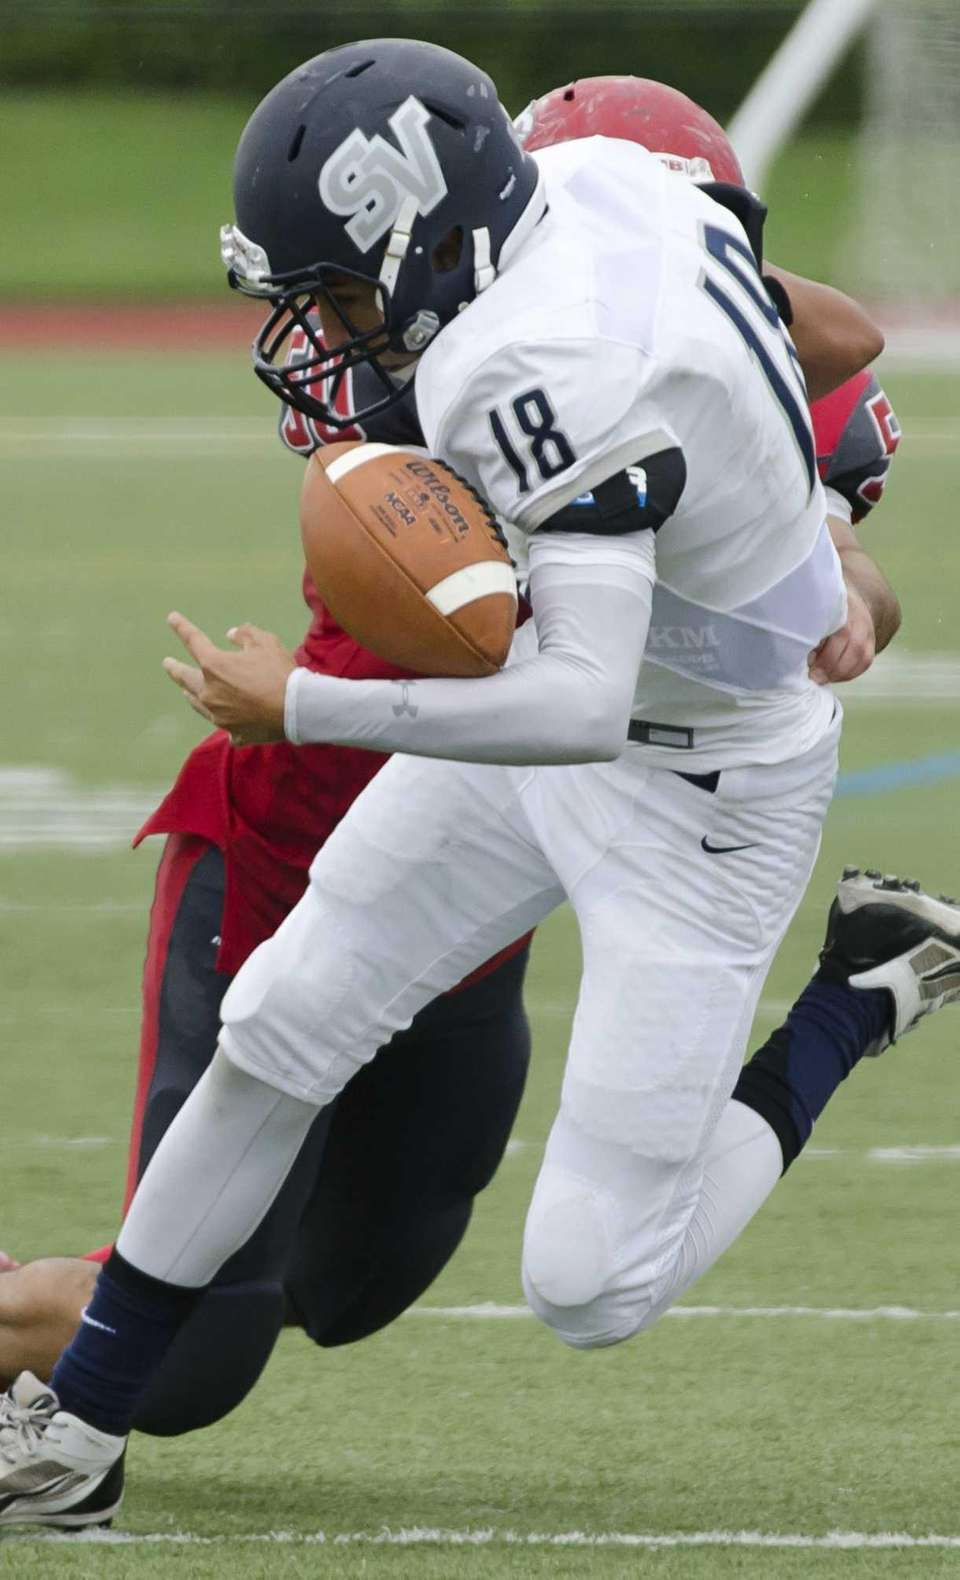 St. Joseph by-the-Sea's Francis Perry, front, gets hit